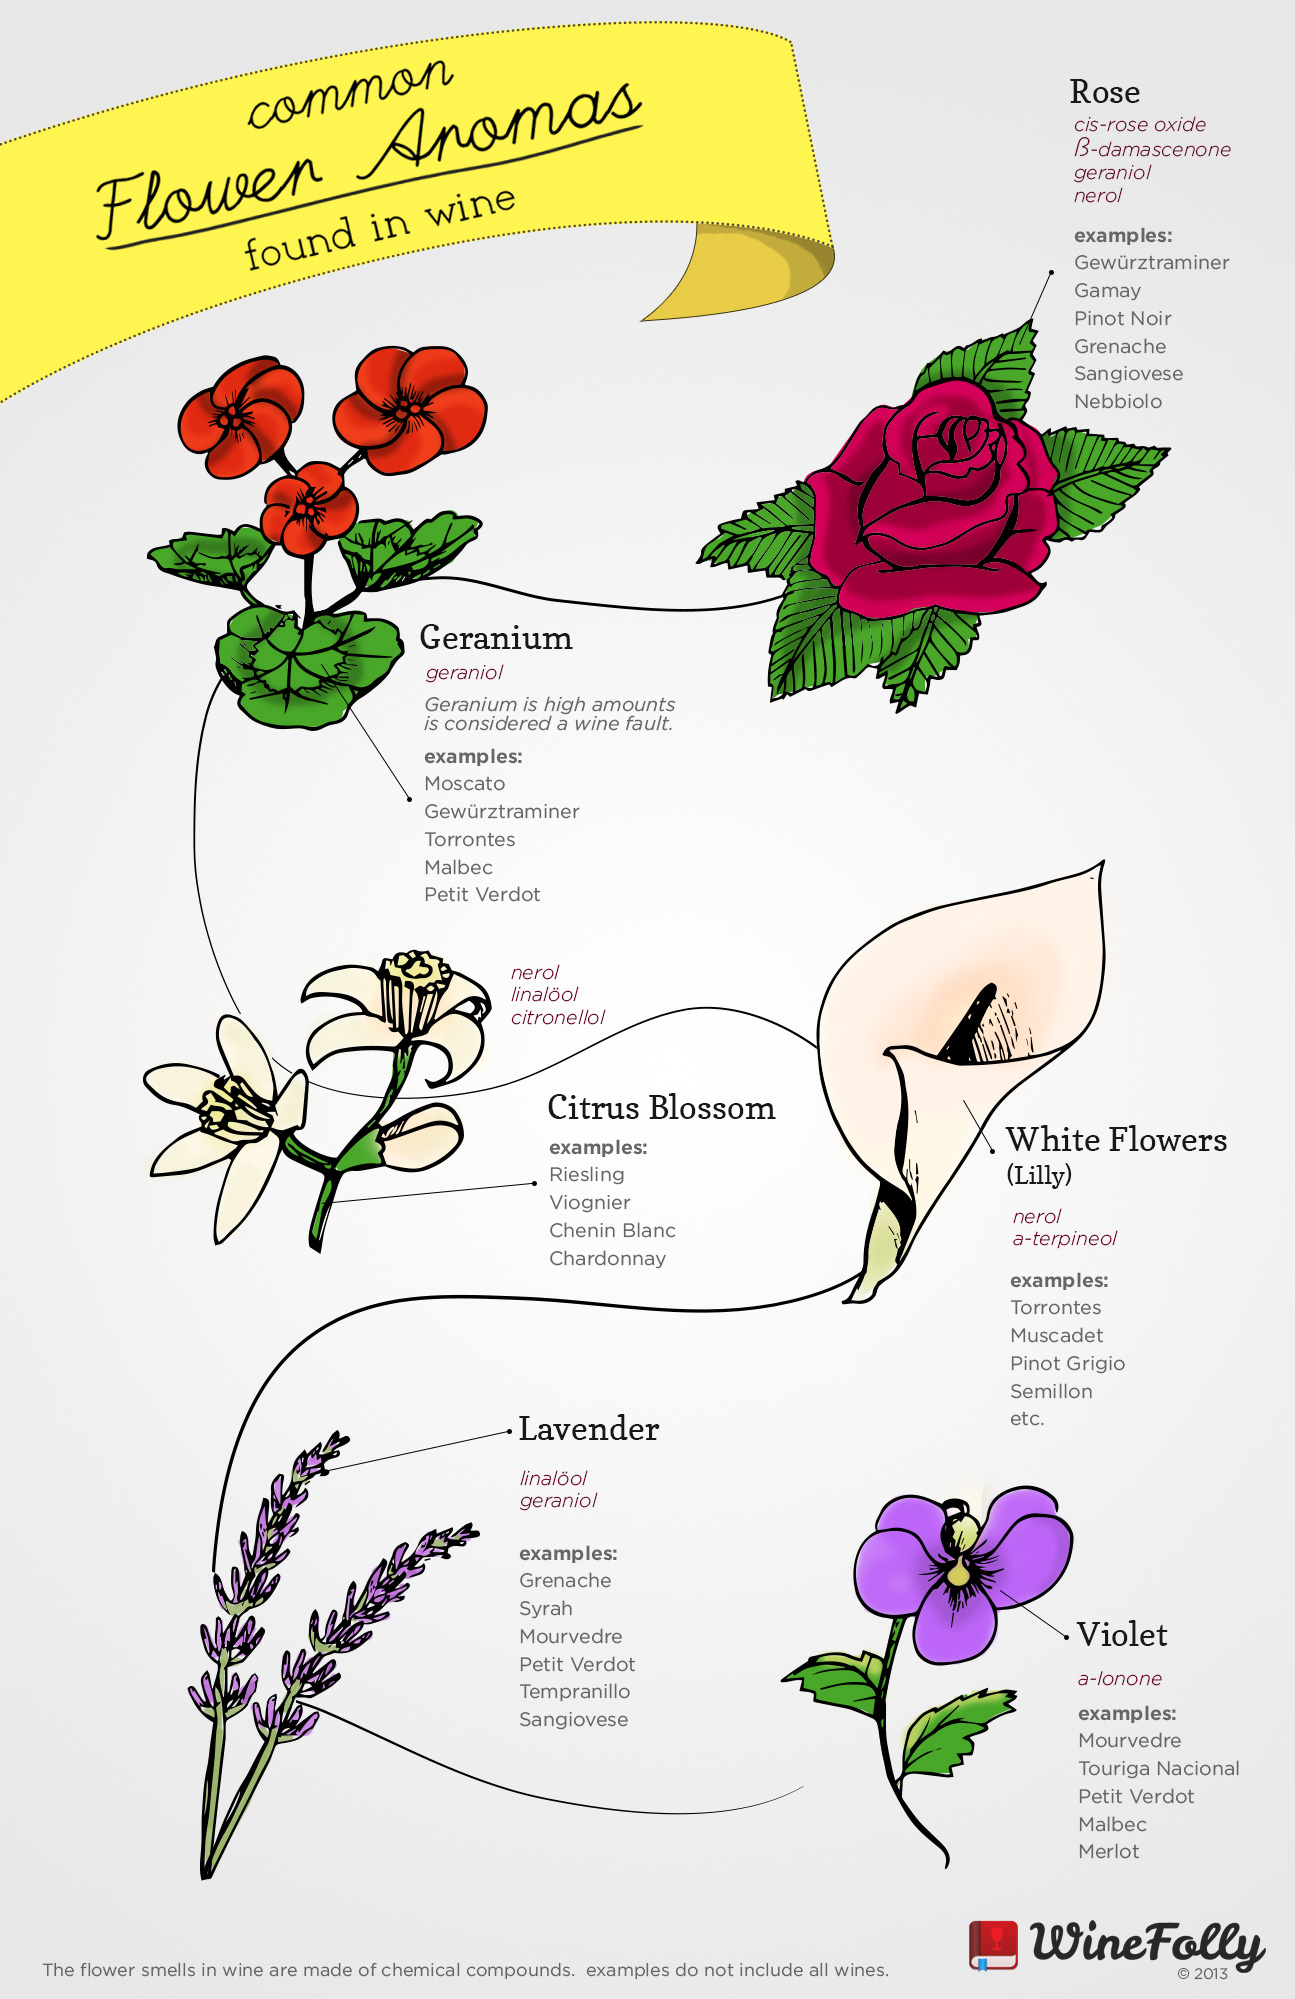 Common flower aromas in wine